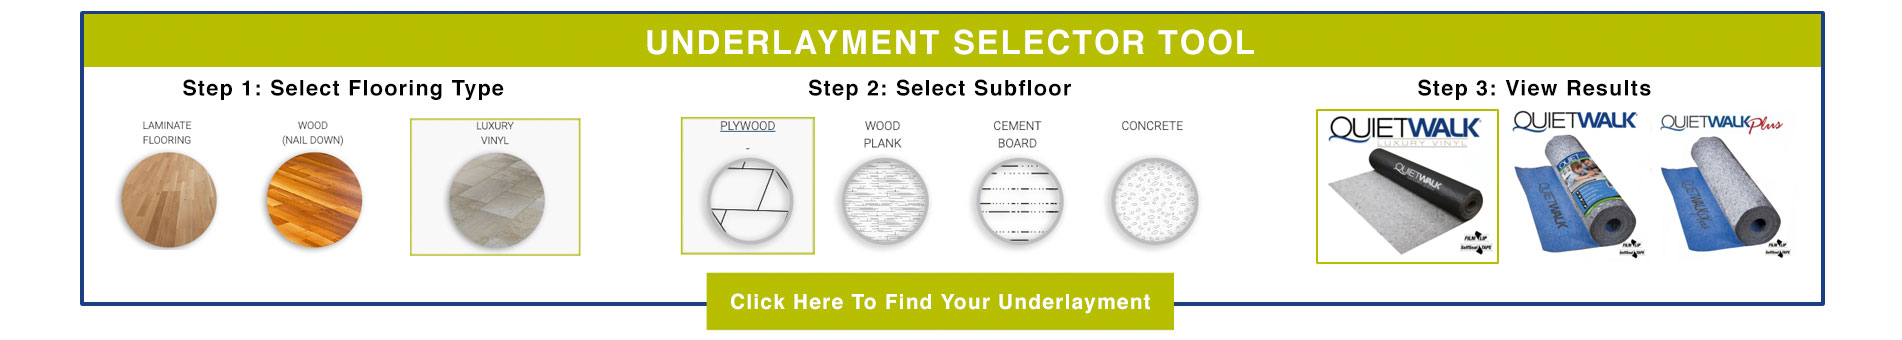 Performance Flooring Underlayment